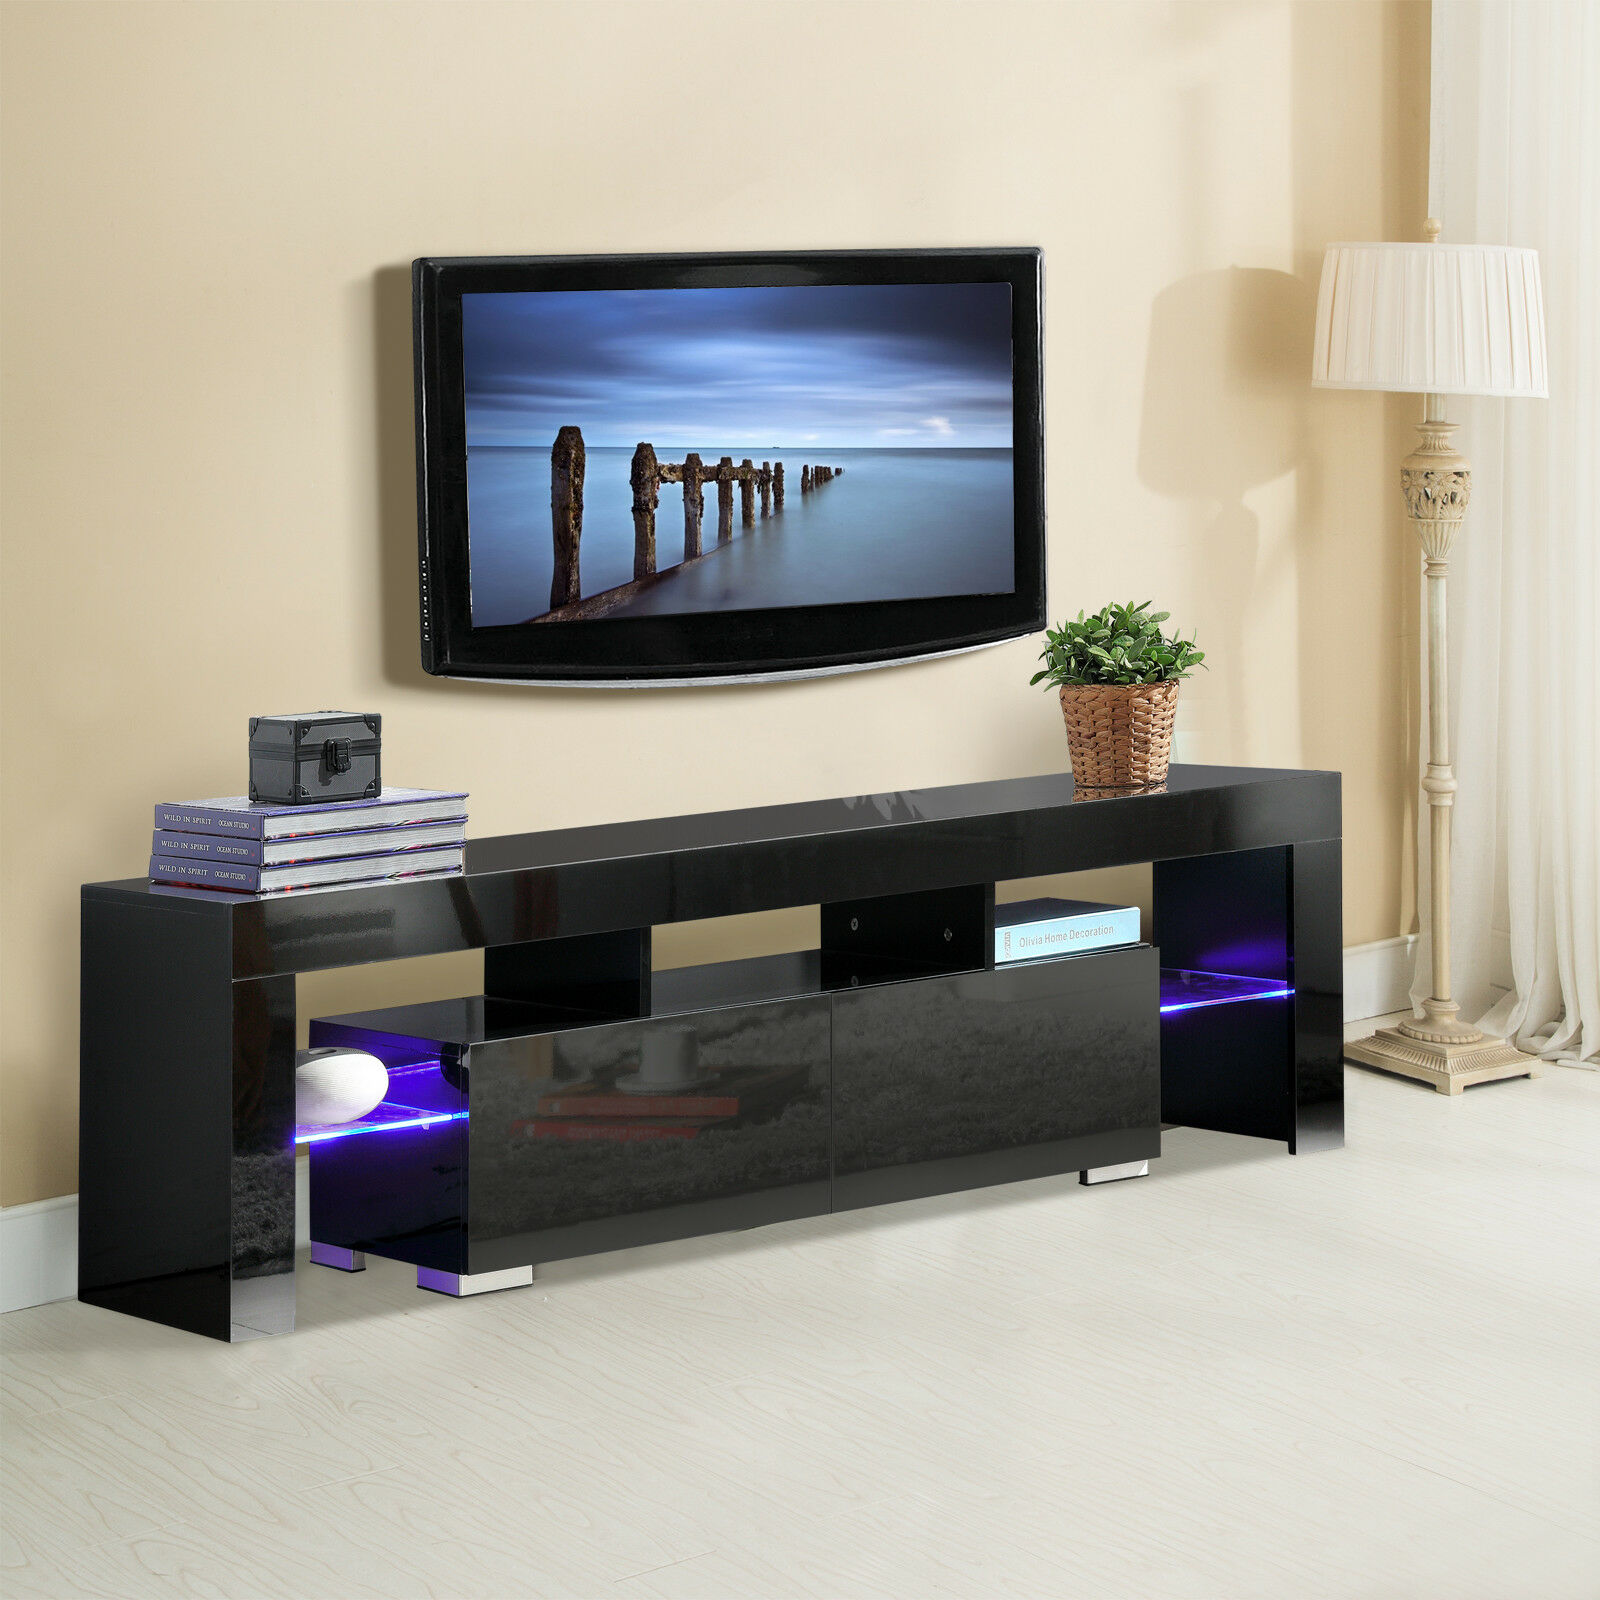 High Gloss Black TV Stand Unit Cabinet 2 Drawers Console